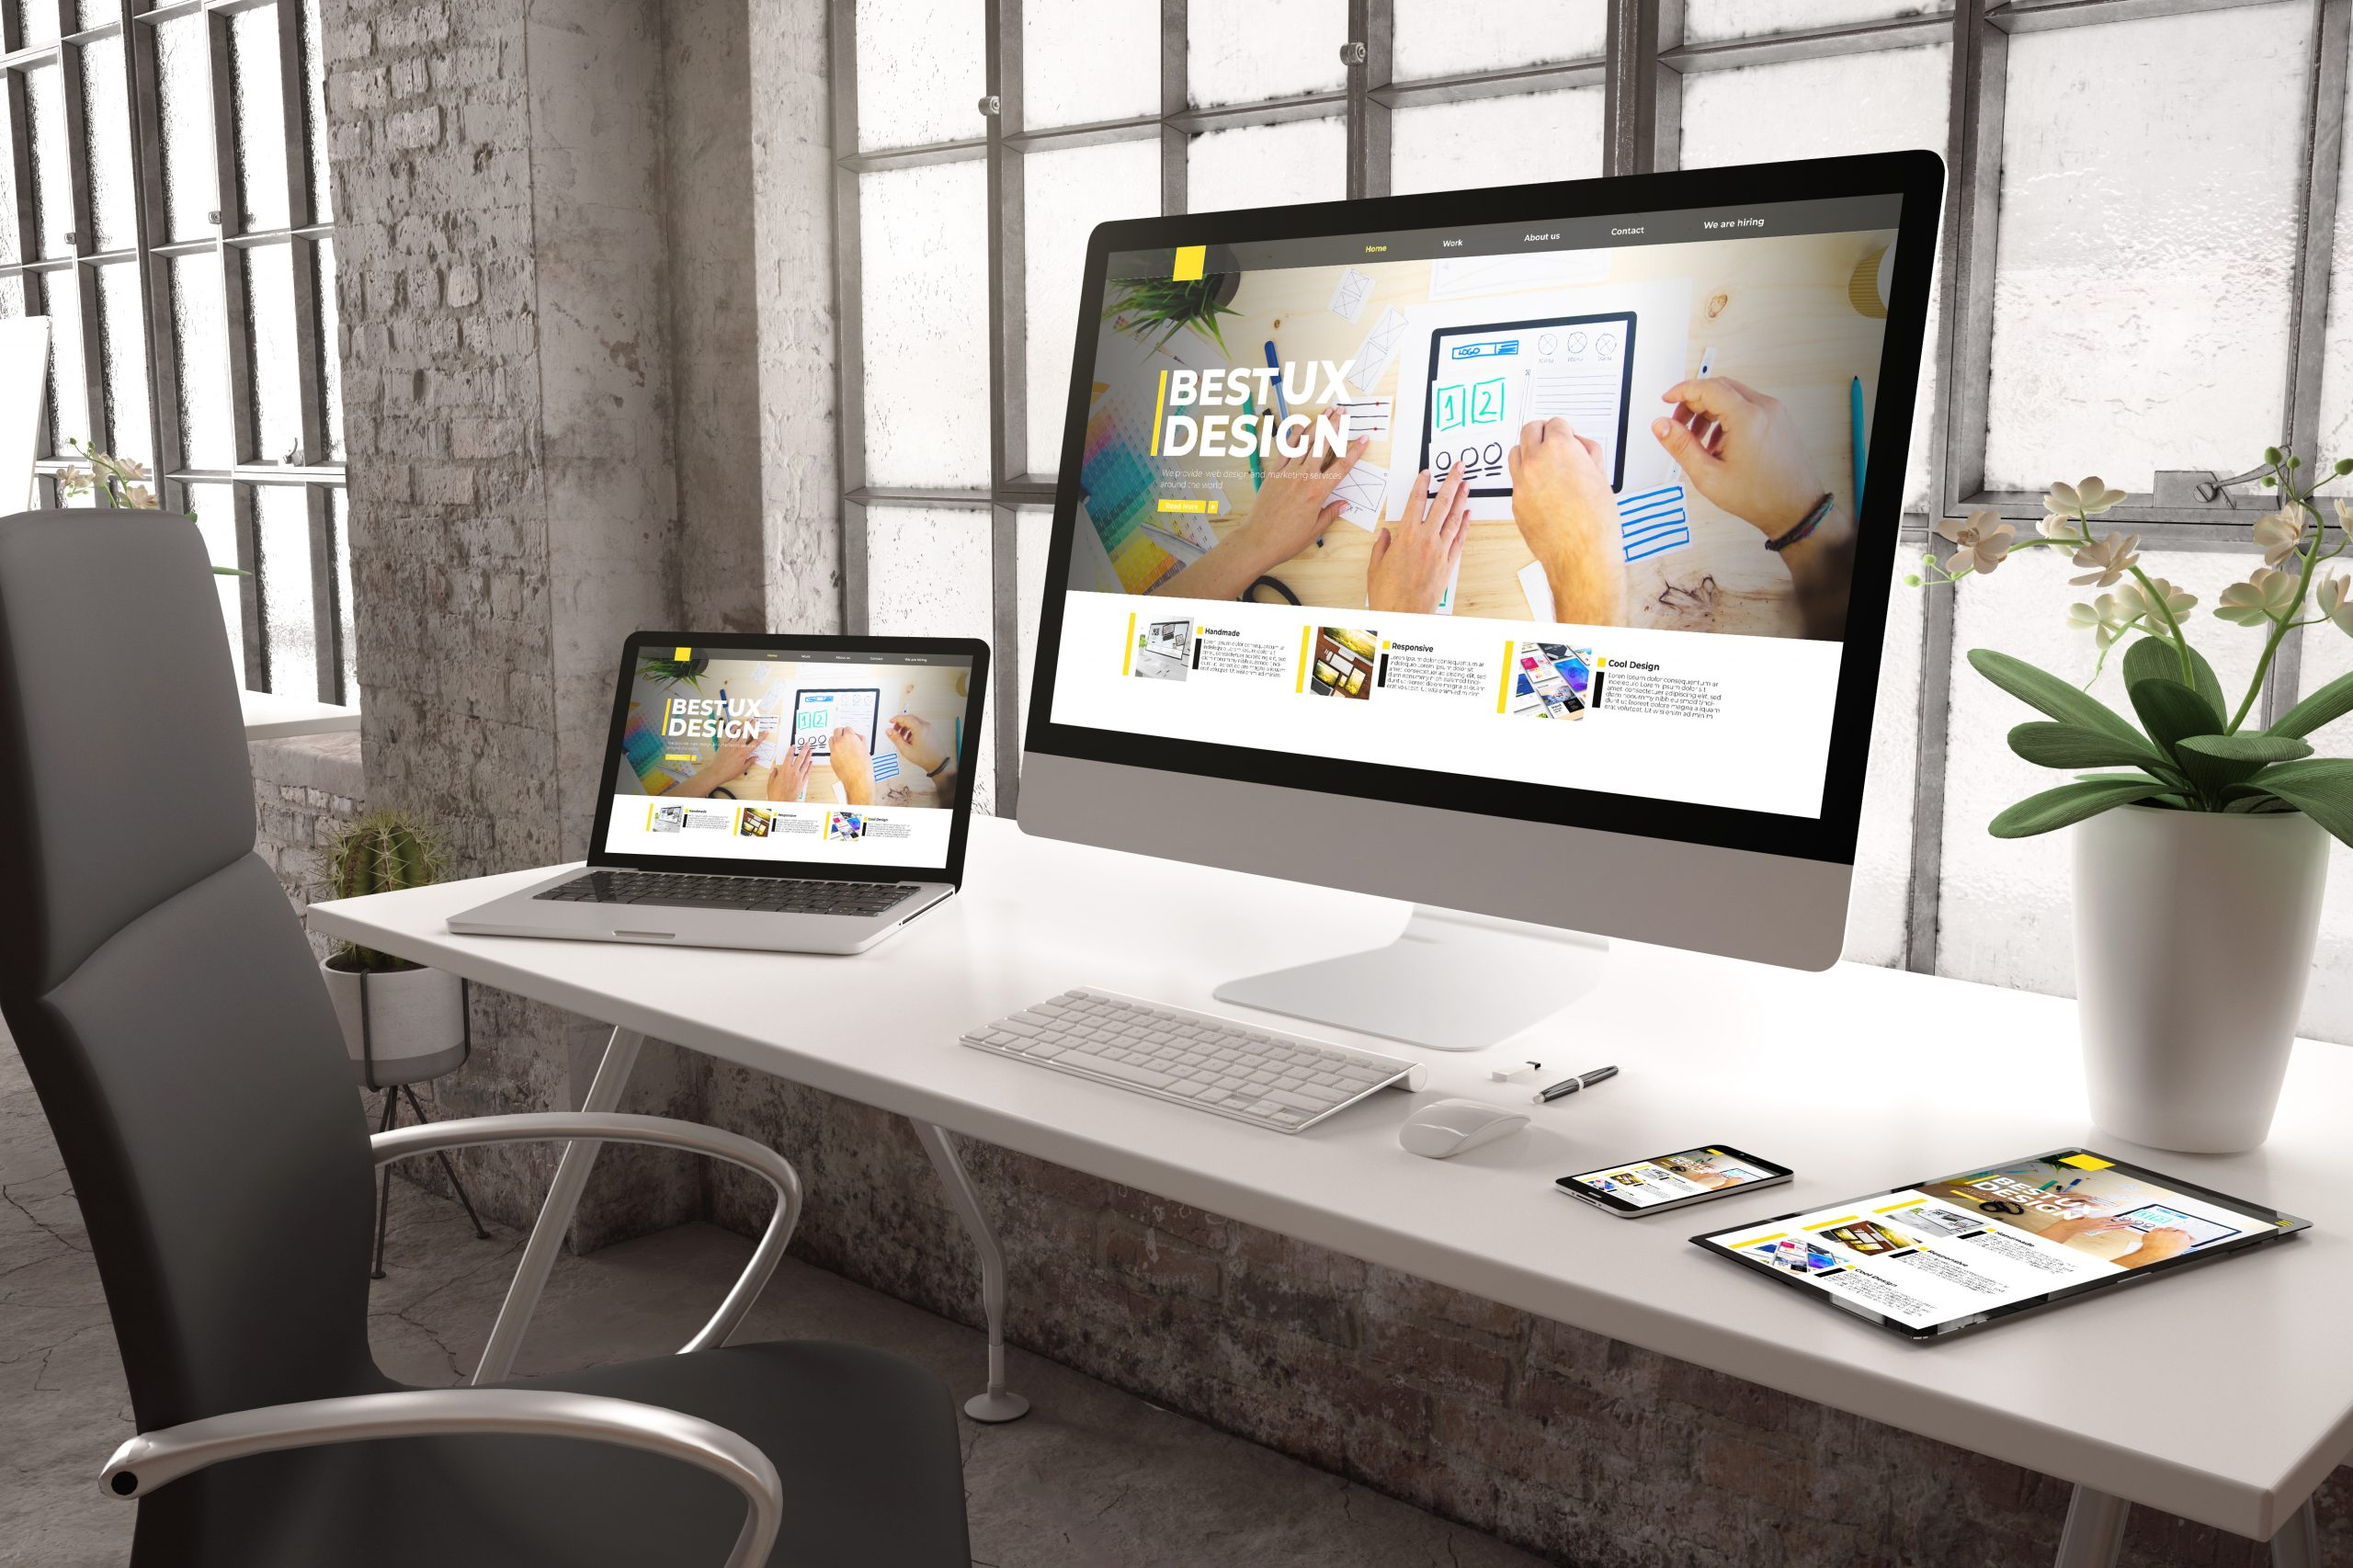 3d rendering of industrial office with devices showing ux designwebsite